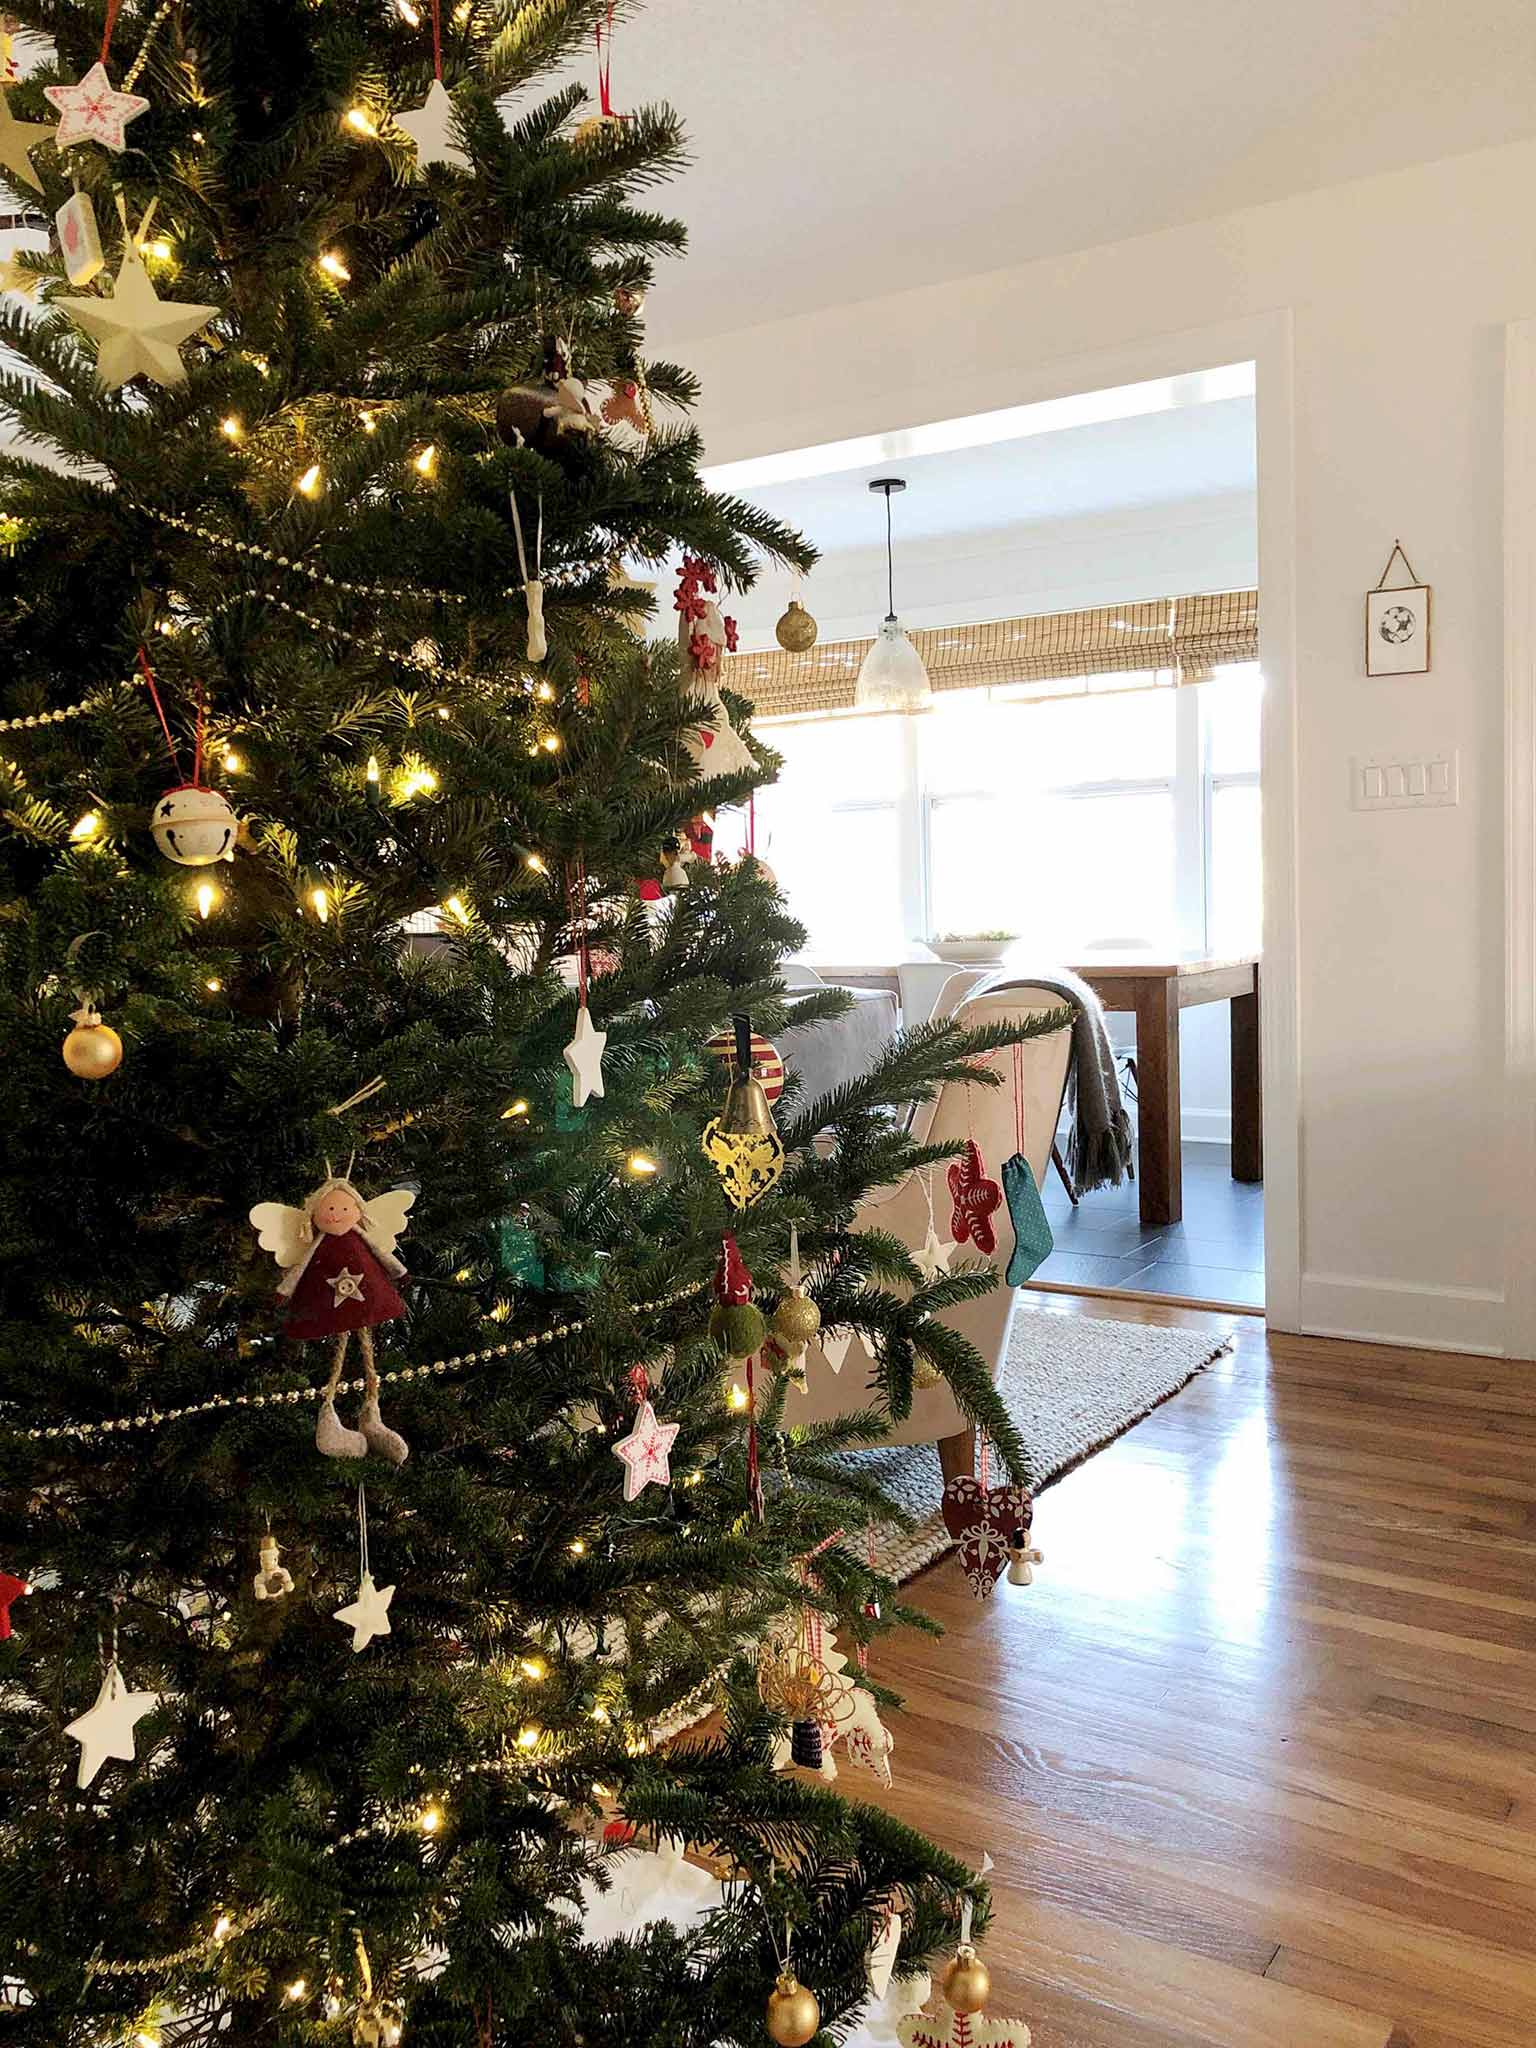 Christmas tree in the living room - Simple Yet Cozy Christmas Decor - That Homebird Life